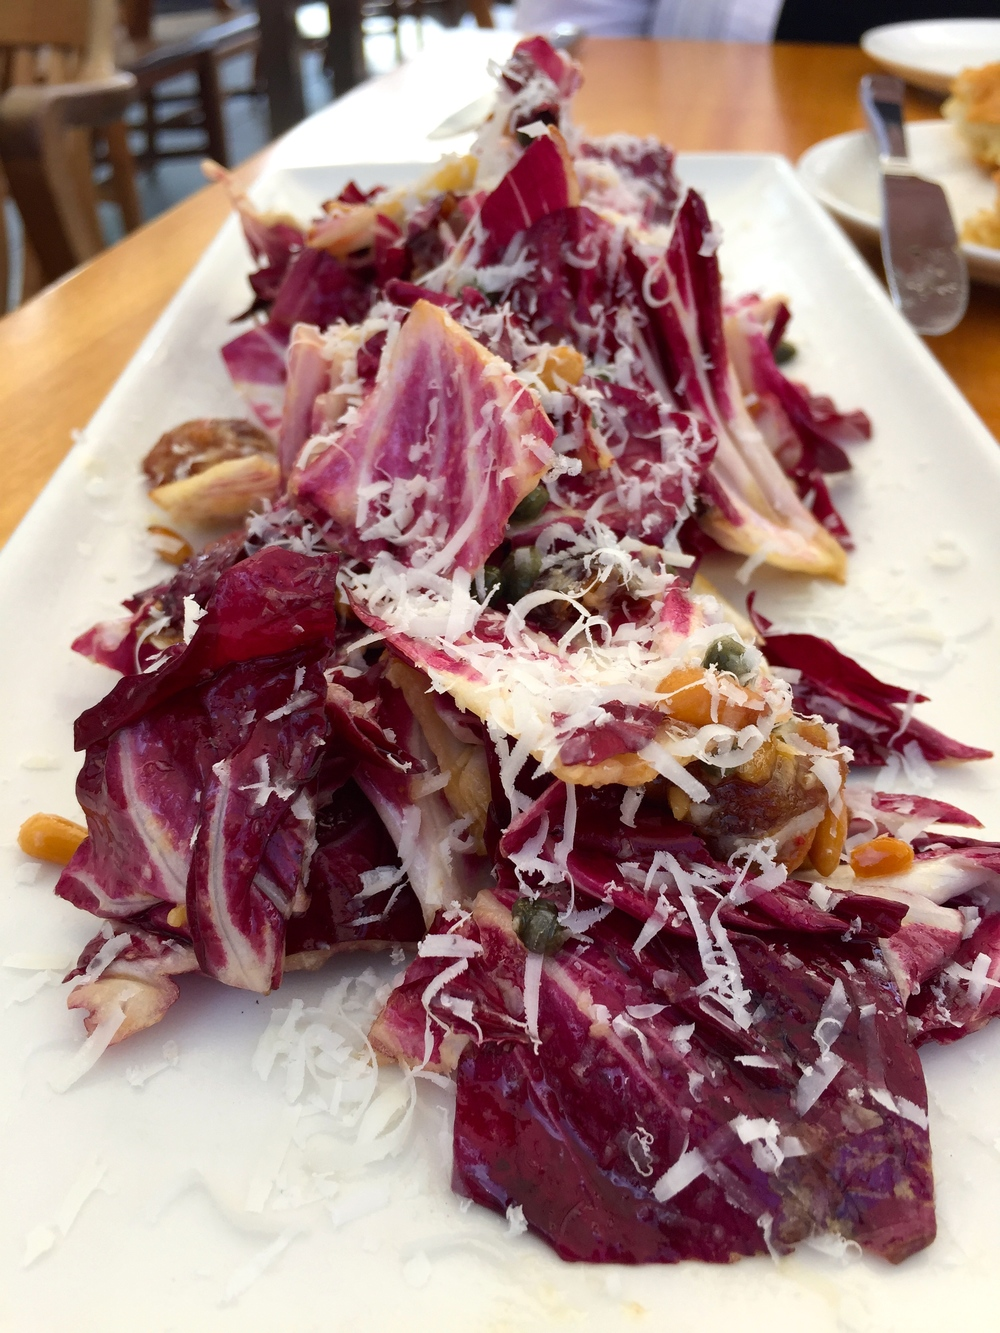 Verona Radicchio, honey dates, pine nuts, capers, bagna cauda, pecorino and sardo.